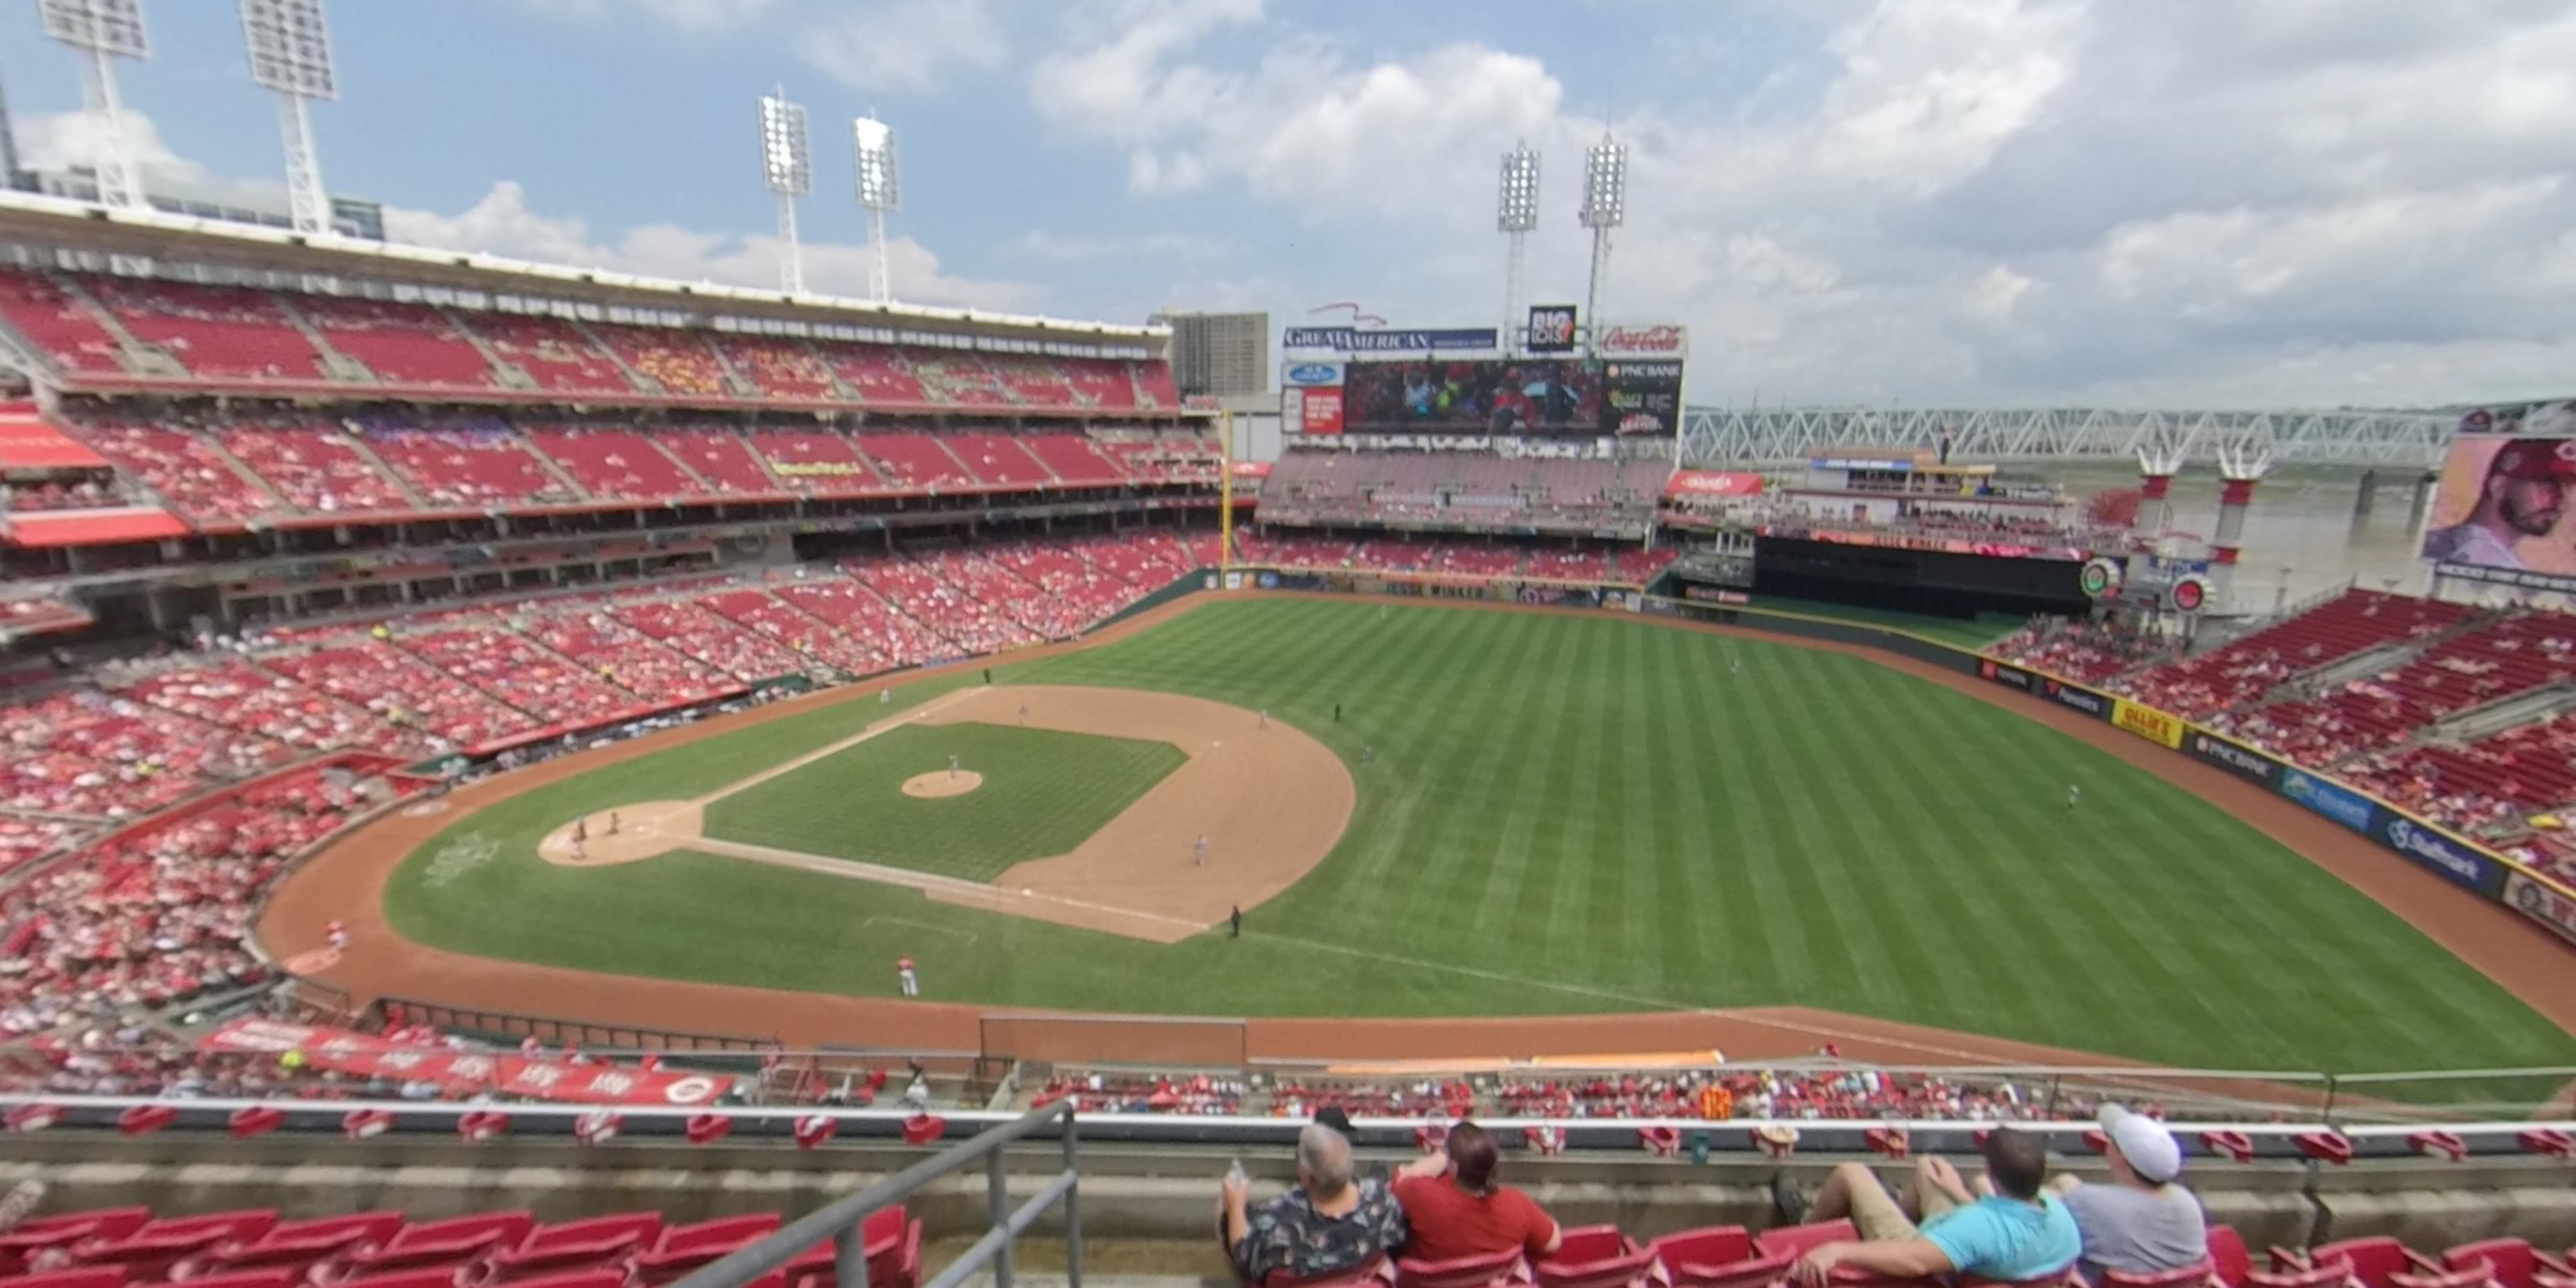 Section 433 at Great American Ball Park - Cincinnati Reds ...